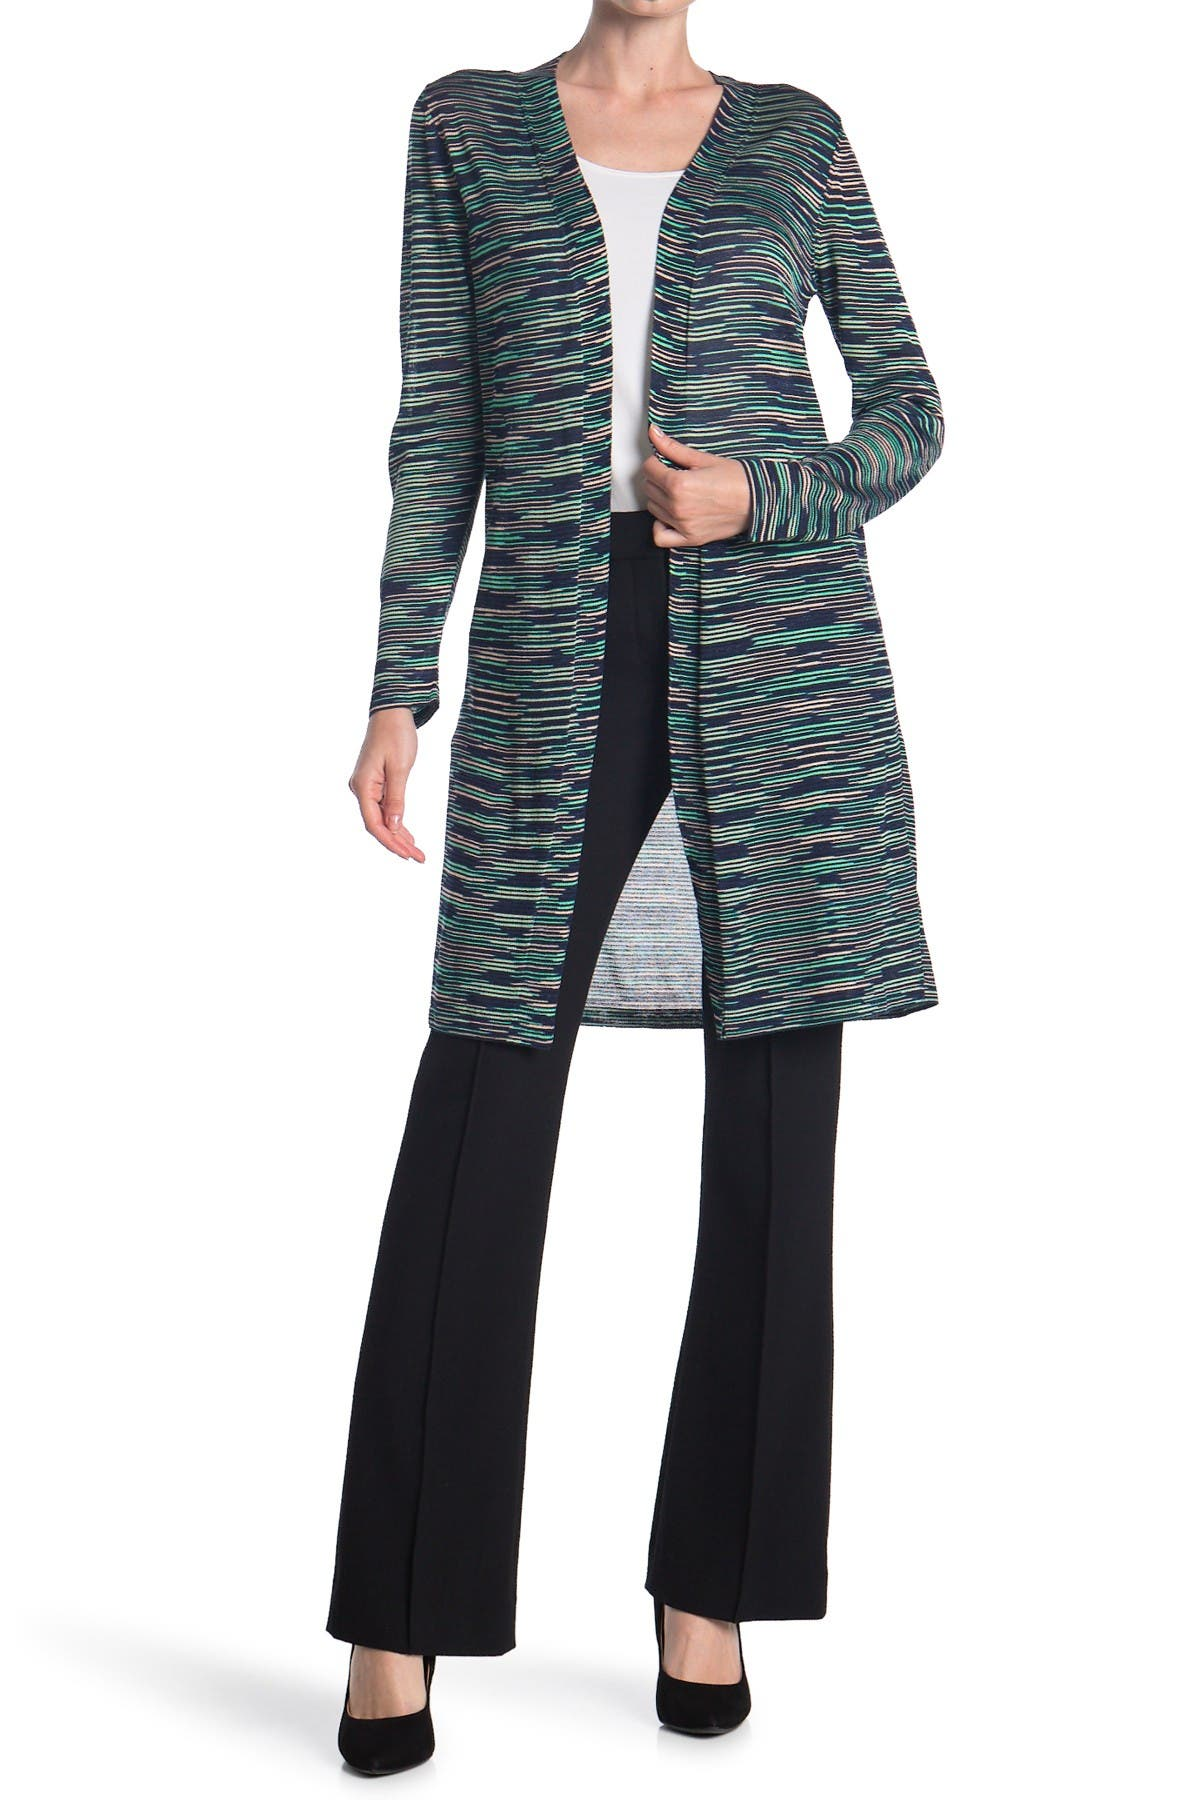 Image of M Missoni Longline Patterned Knit Cardigan